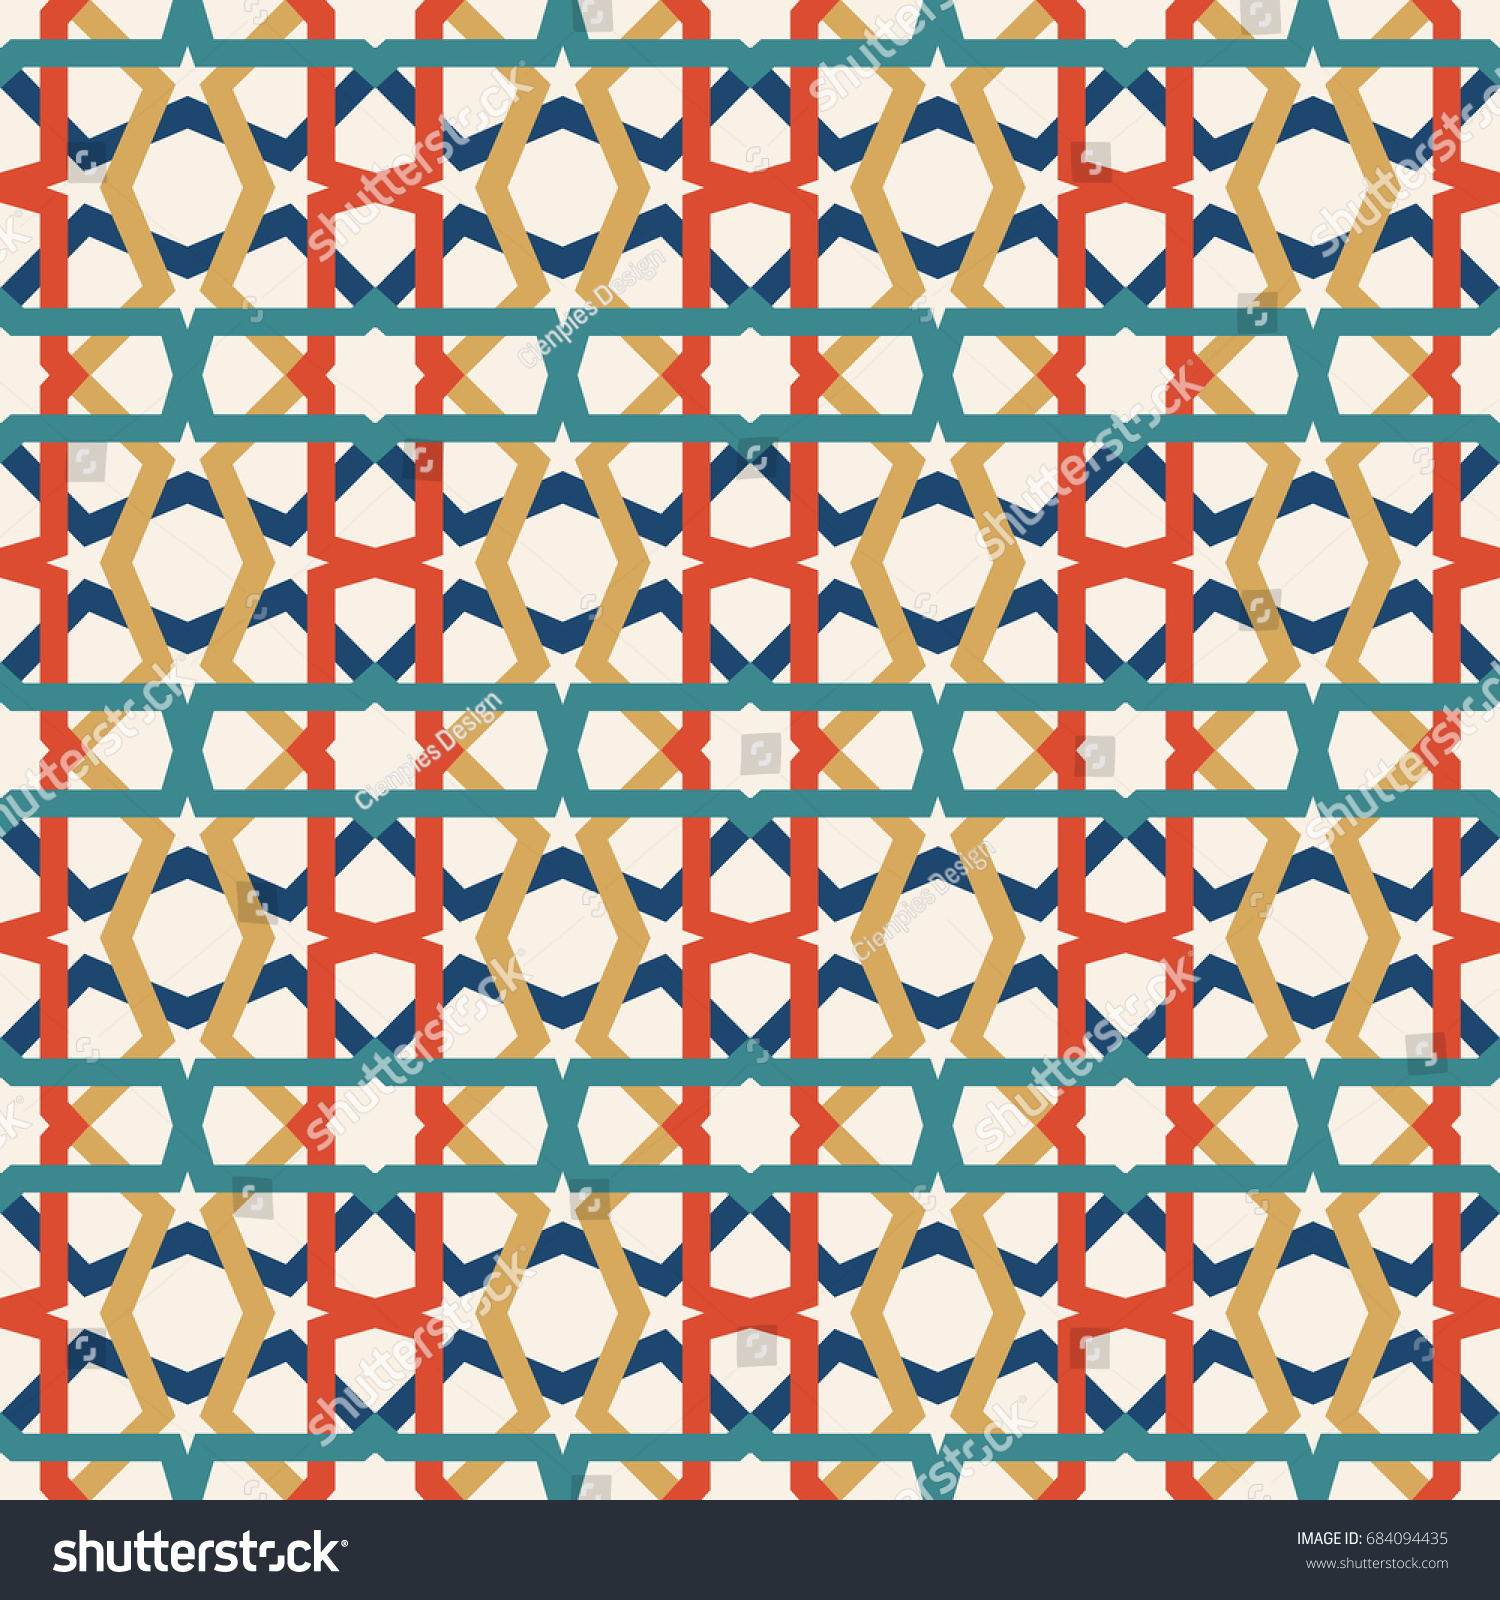 Classic Ceramic Mosaic Tile Seamless Pattern Stock Vector (Royalty ...